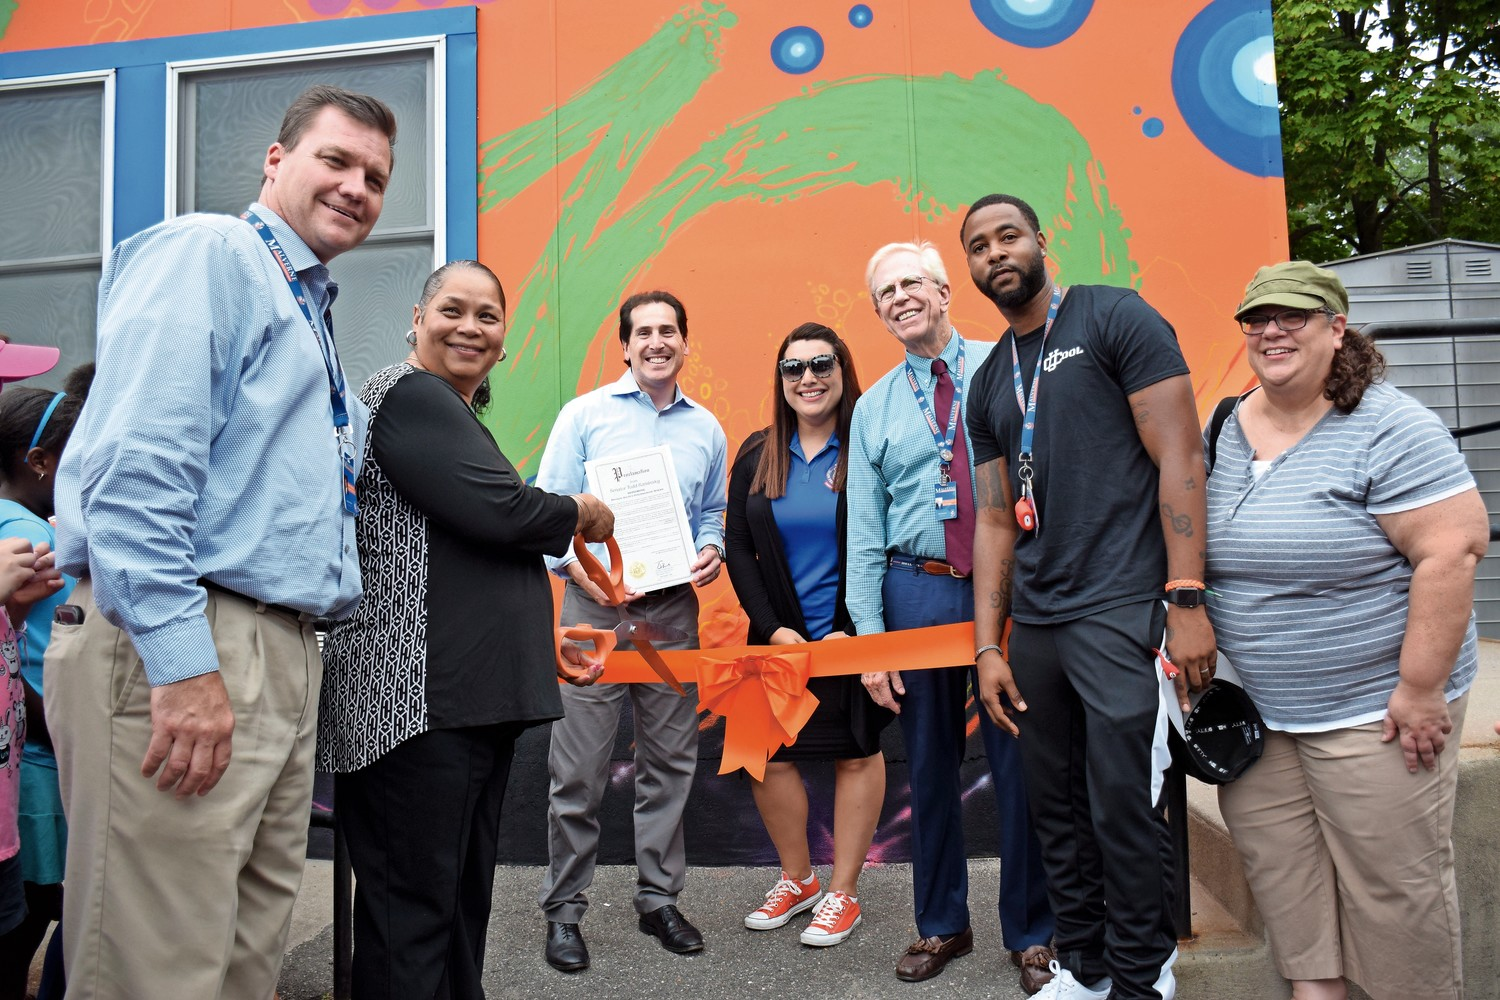 District members Steven Gilhuley, left, Phyllis Tinsley, State Sen. Senator Todd Kaminsky, Principal Rachel Gross, Superintendent James Hunderfund, teacher Nick Alleva and Board President Jeanne D'Esposito at the ribbon-cutting ceremony for Explore Zone.